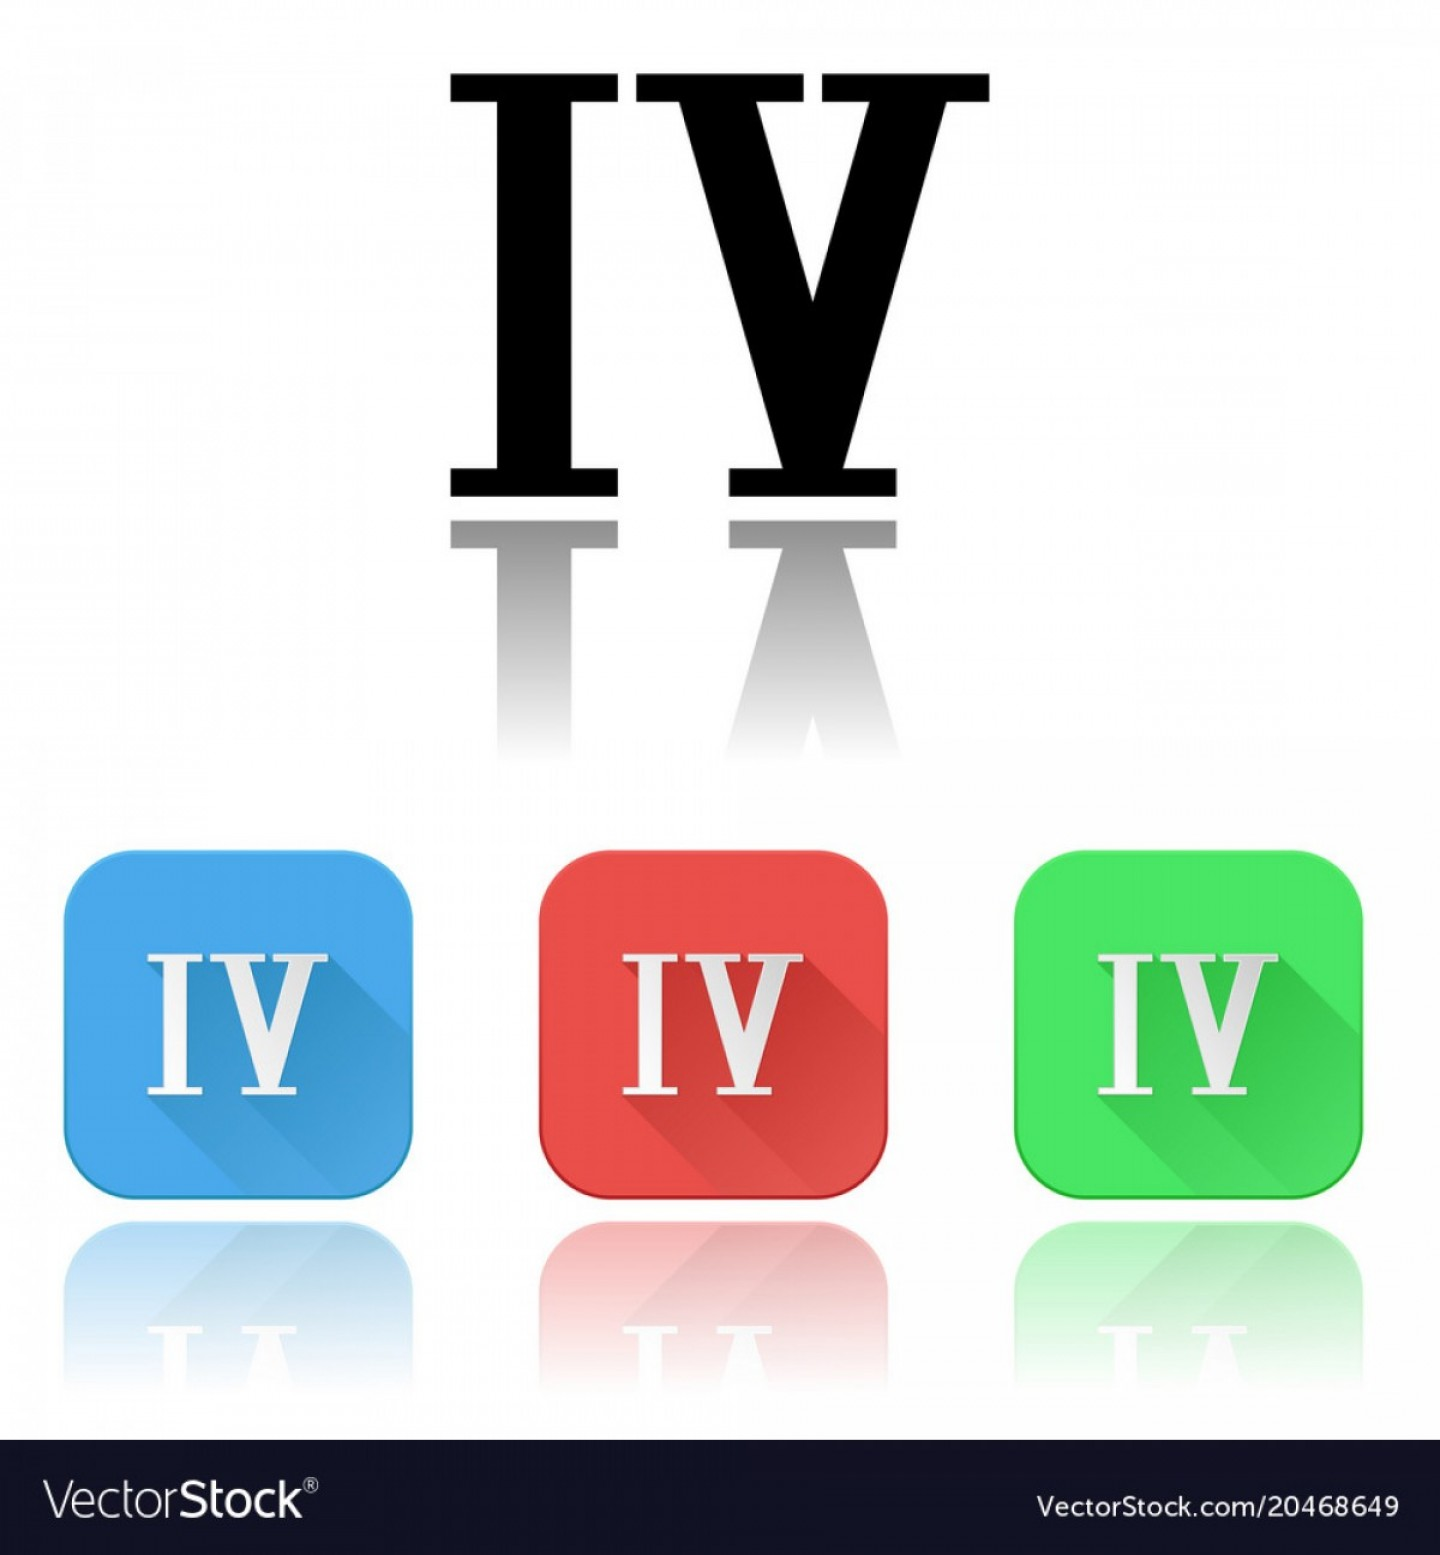 Vector IV: Iv Roman Numeral Icons Colored Set With Vector